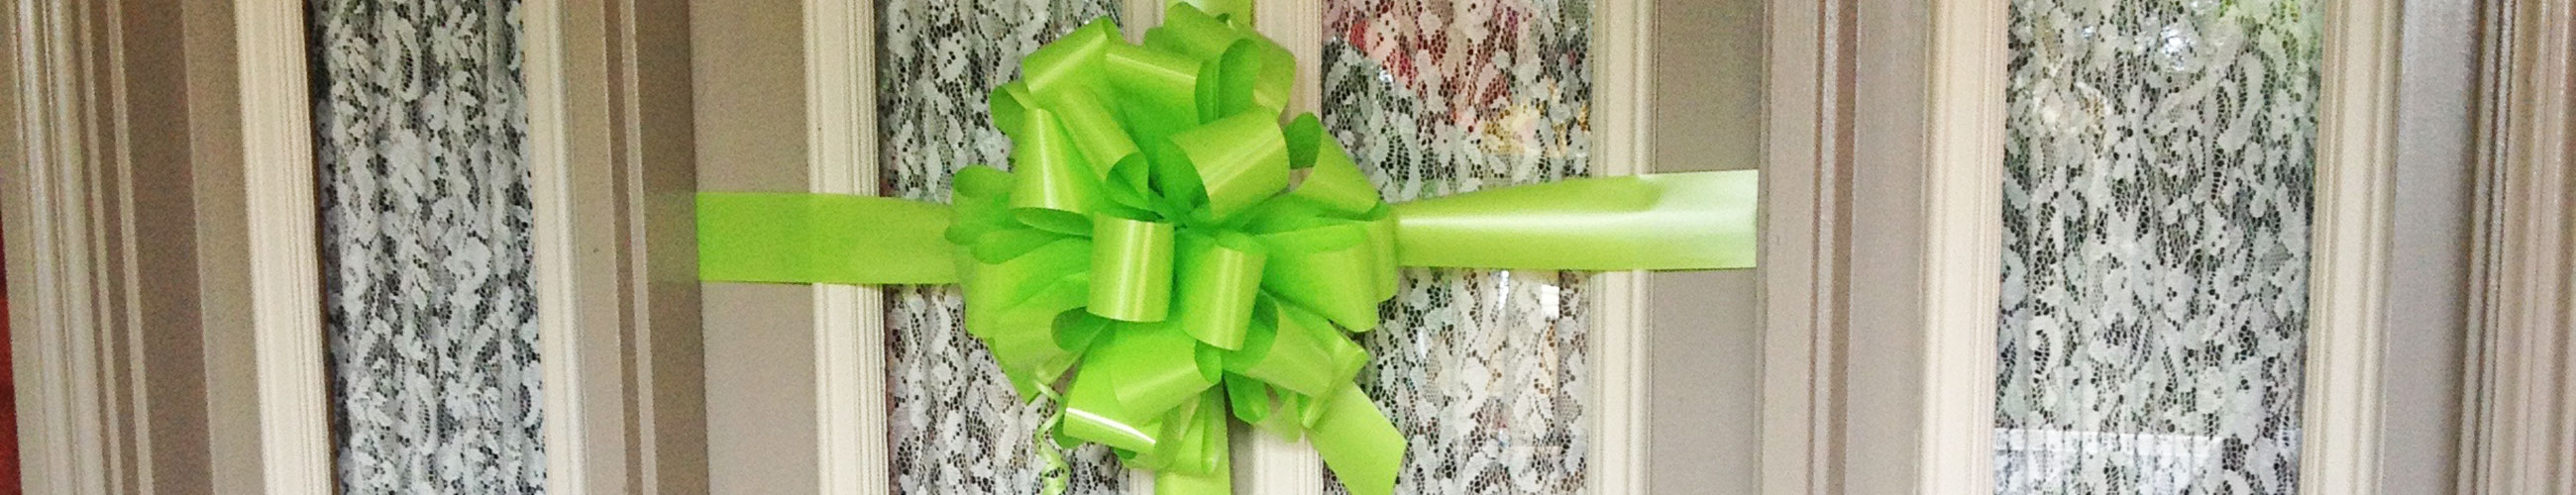 house-bow-lime-green